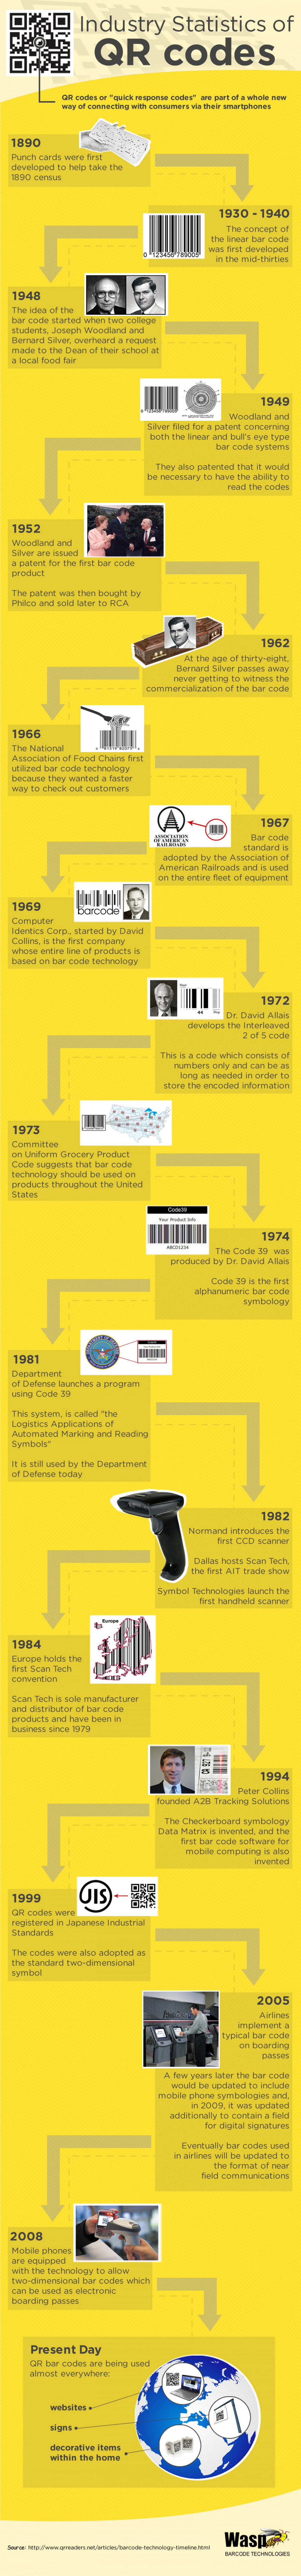 Industry Statistics of QR Codes Infographic